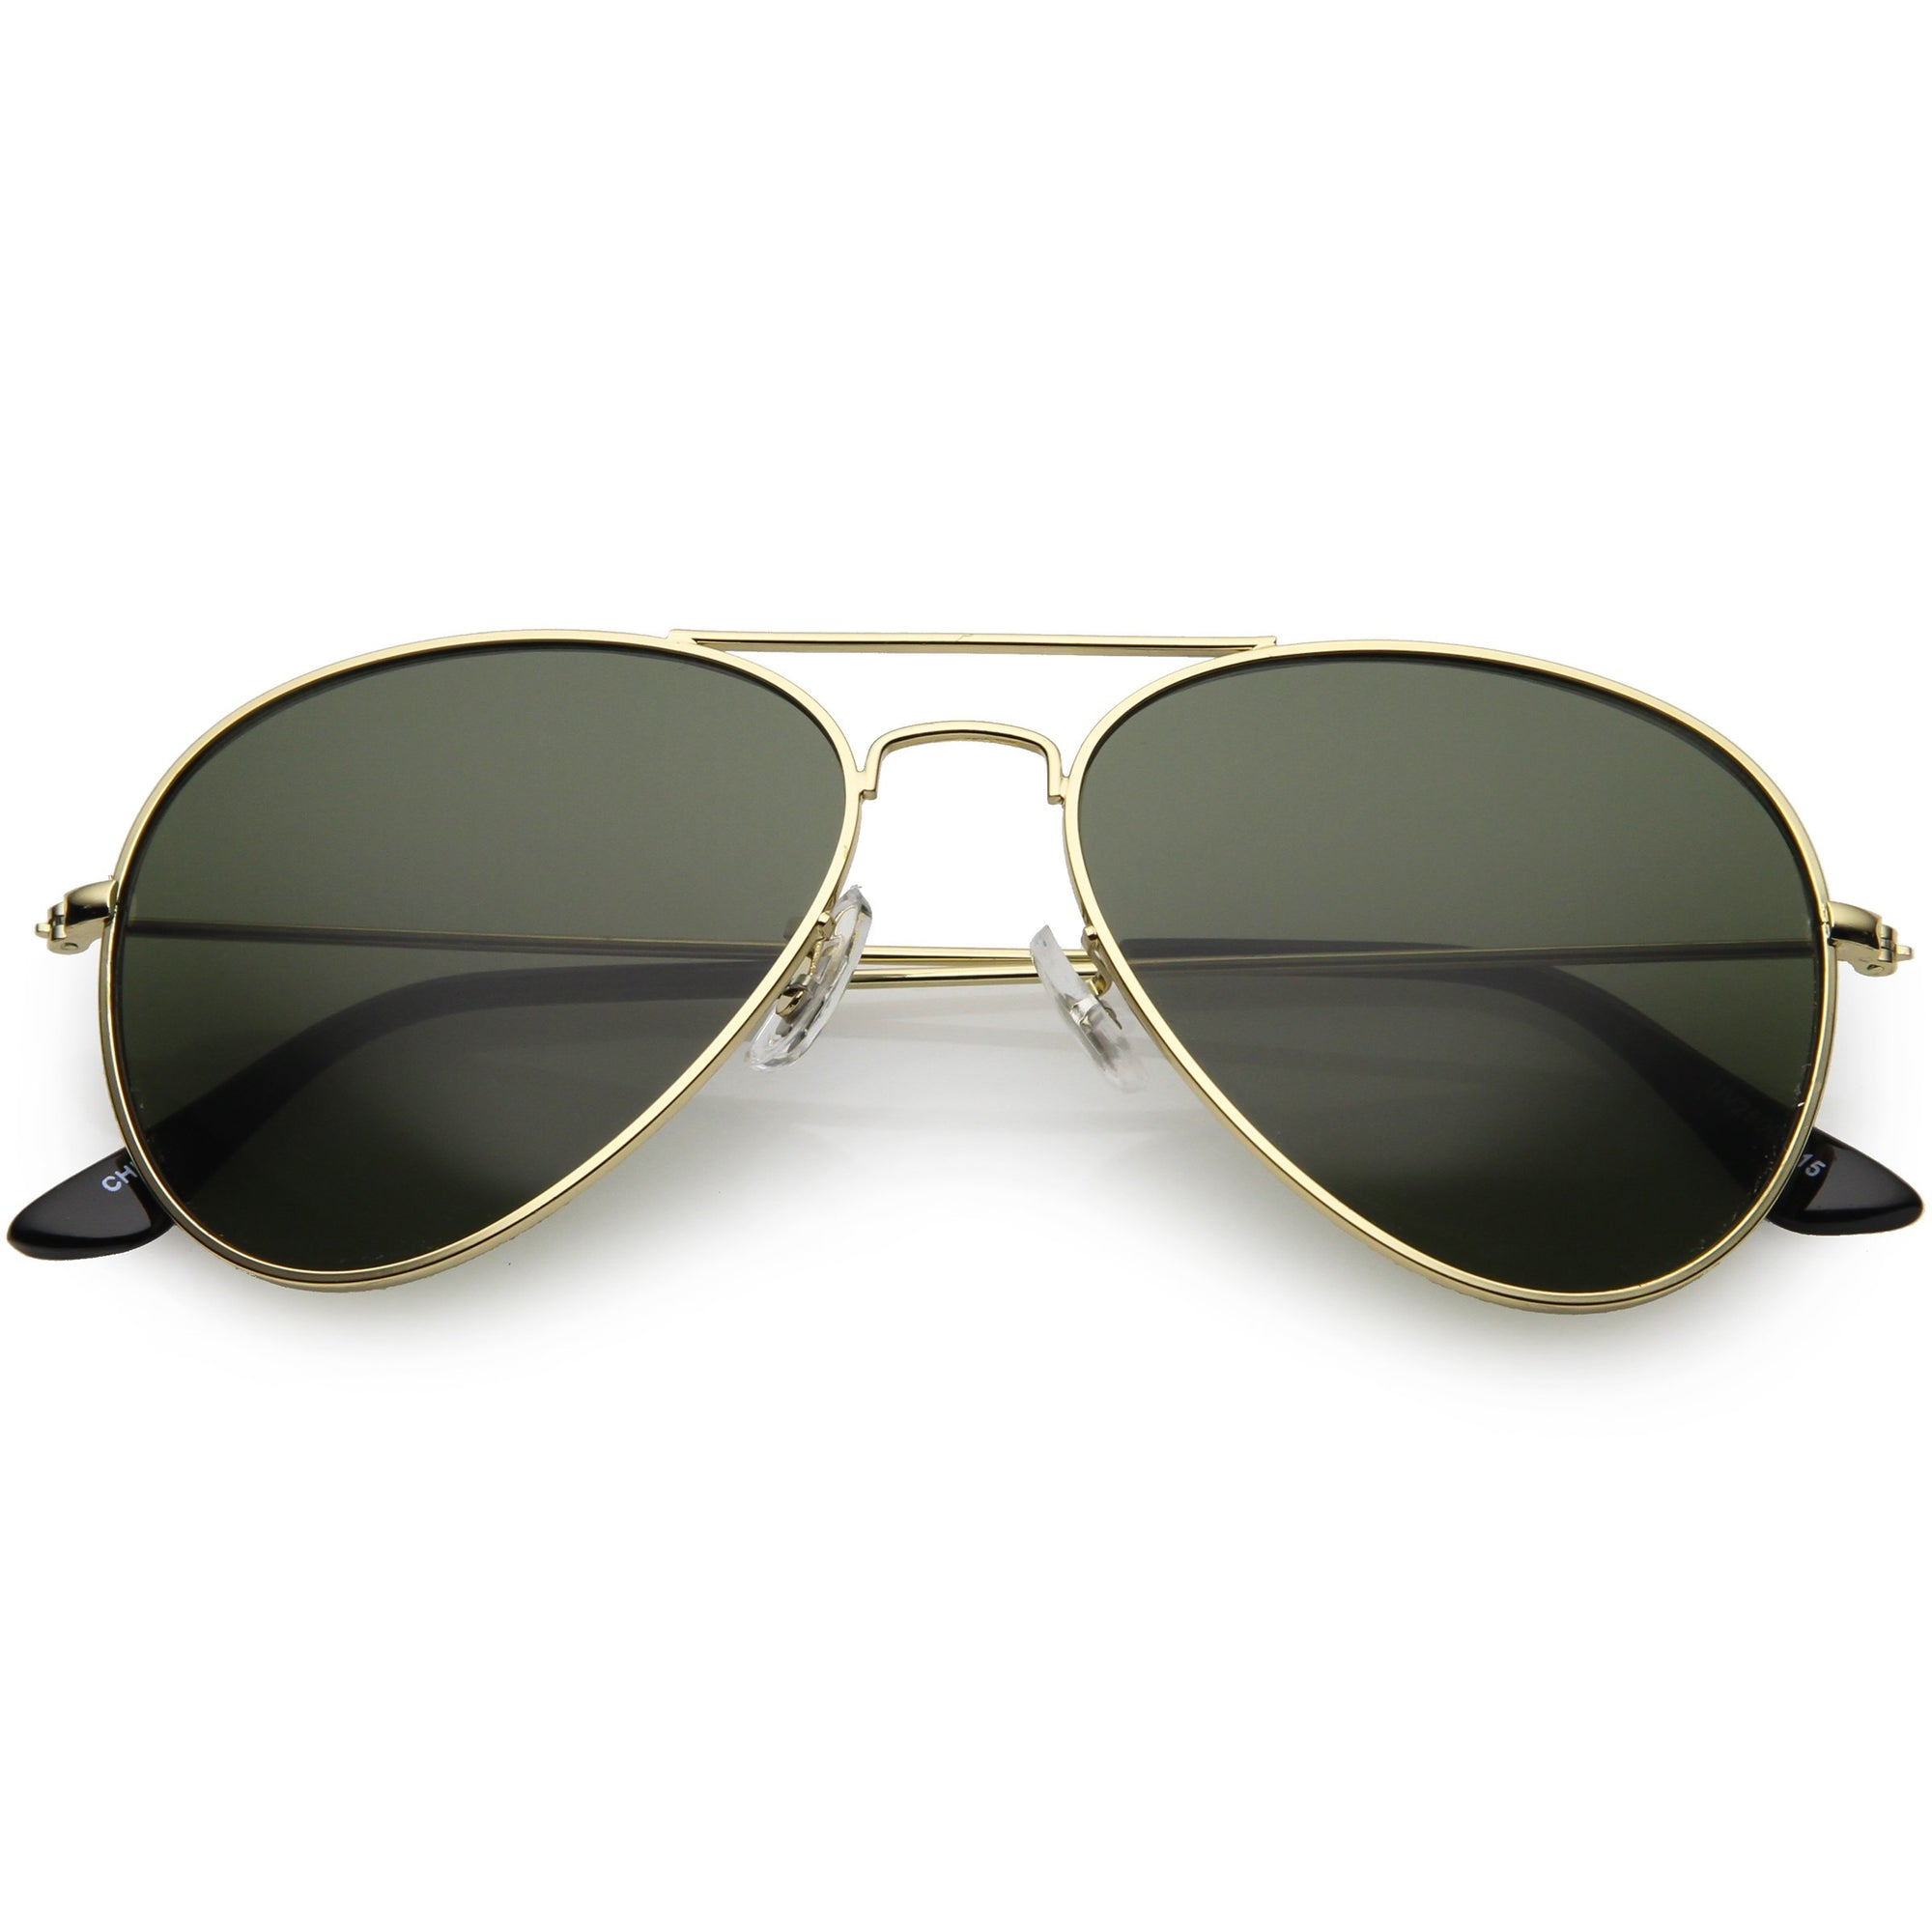 other styles available also arcade maze graphic aviator sunglasses